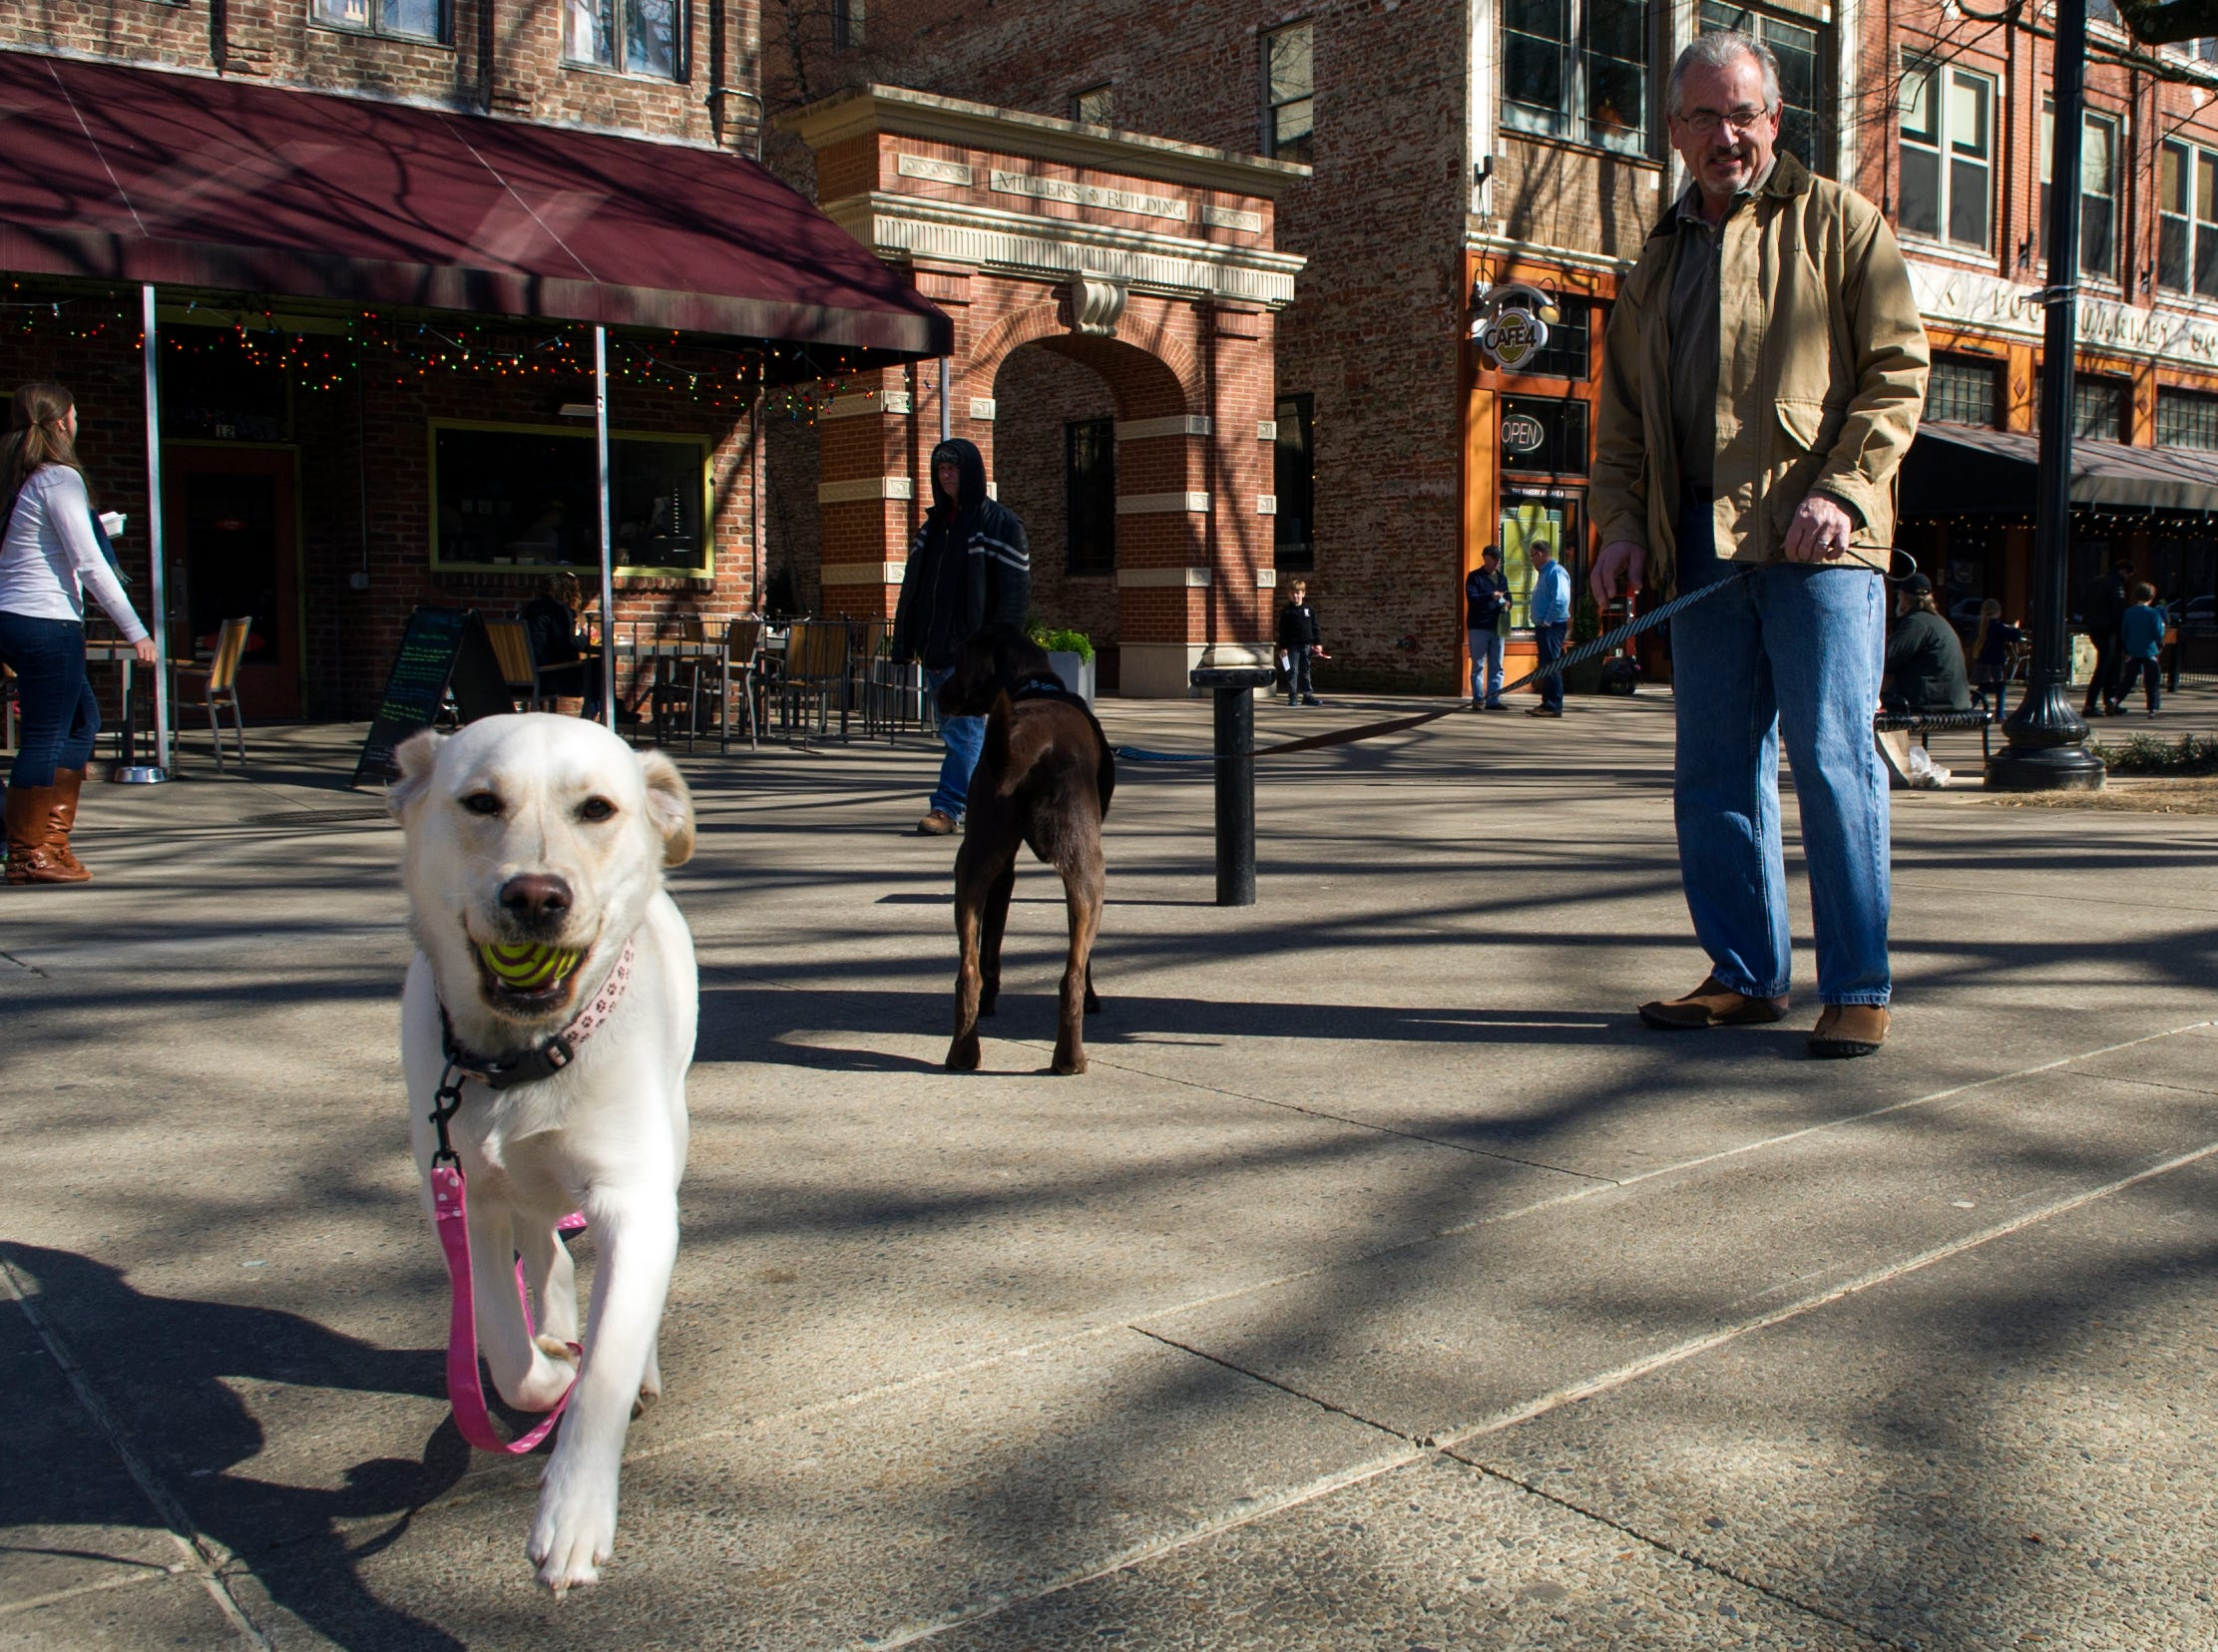 Butch Morrow, a downtown resident, walks his Labradores Sophie, left, and Jack, right, on Market Square downtown Saturday, Feb. 9, 2013.  (ADAM BRIMER/NEWS SENTINEL)